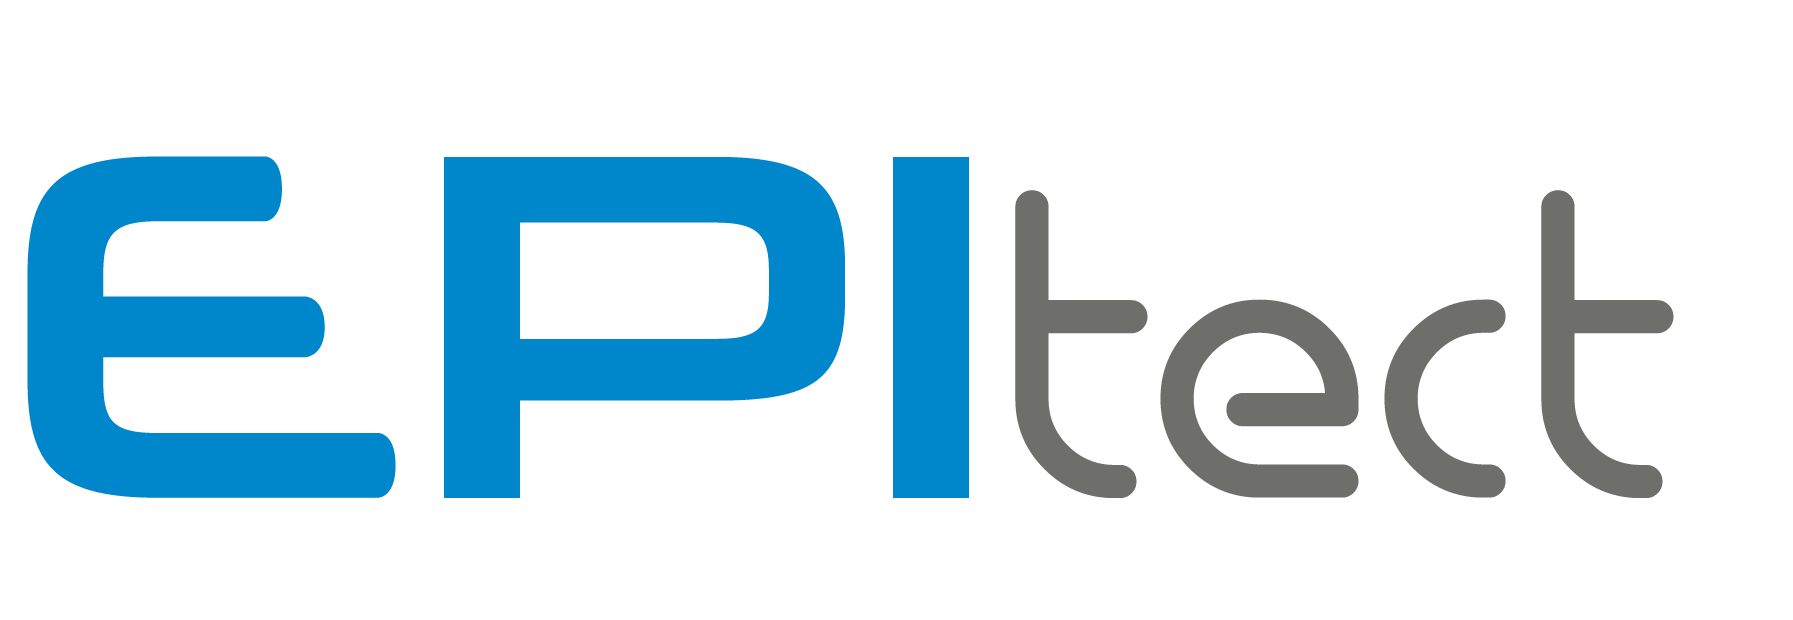 logo-epitect